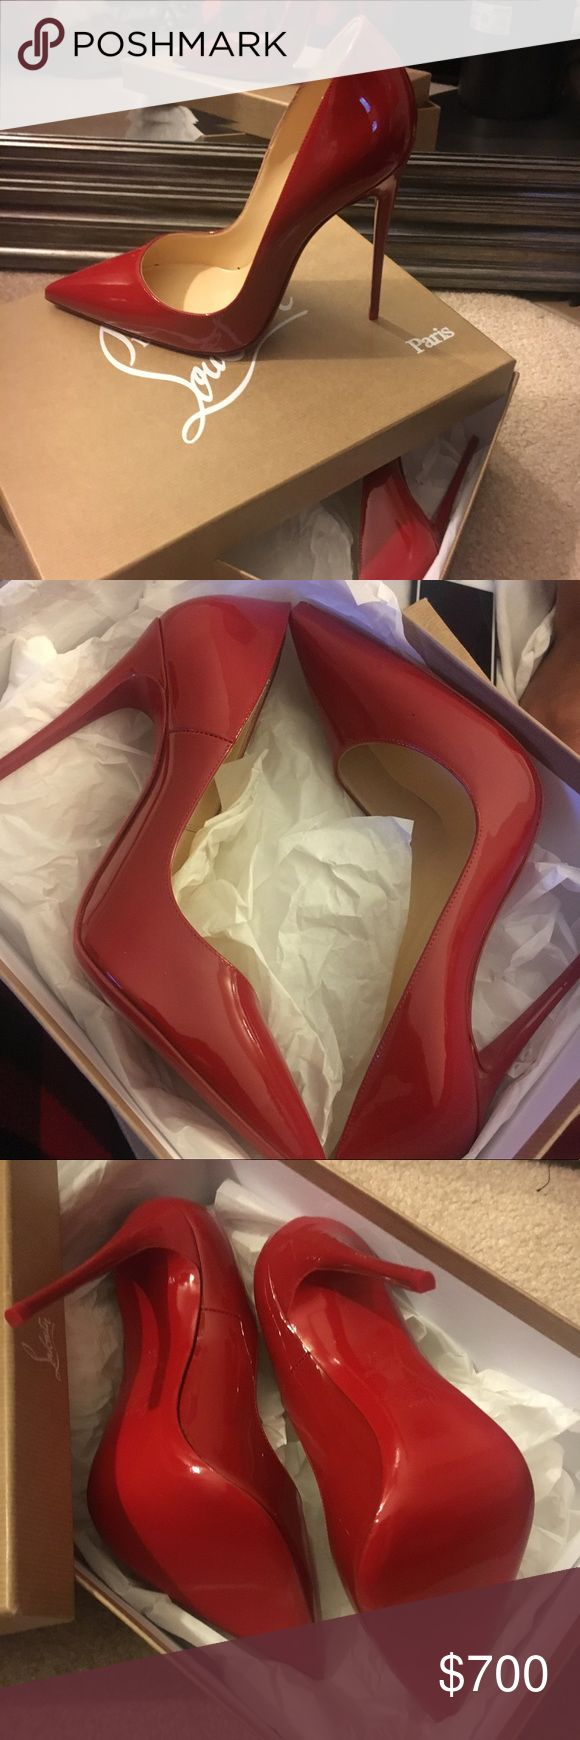 NEVER WORN - Flamingo SoKate size 39 A sexy and classy shoe. Never before worn except for once on the carpet (I ordered the wrong size) Flamingo SoKate ordered online. Comes with box, 2 dusters, 2 additional heel stoppers. Patent Leather Christian Louboutin Shoes Heels